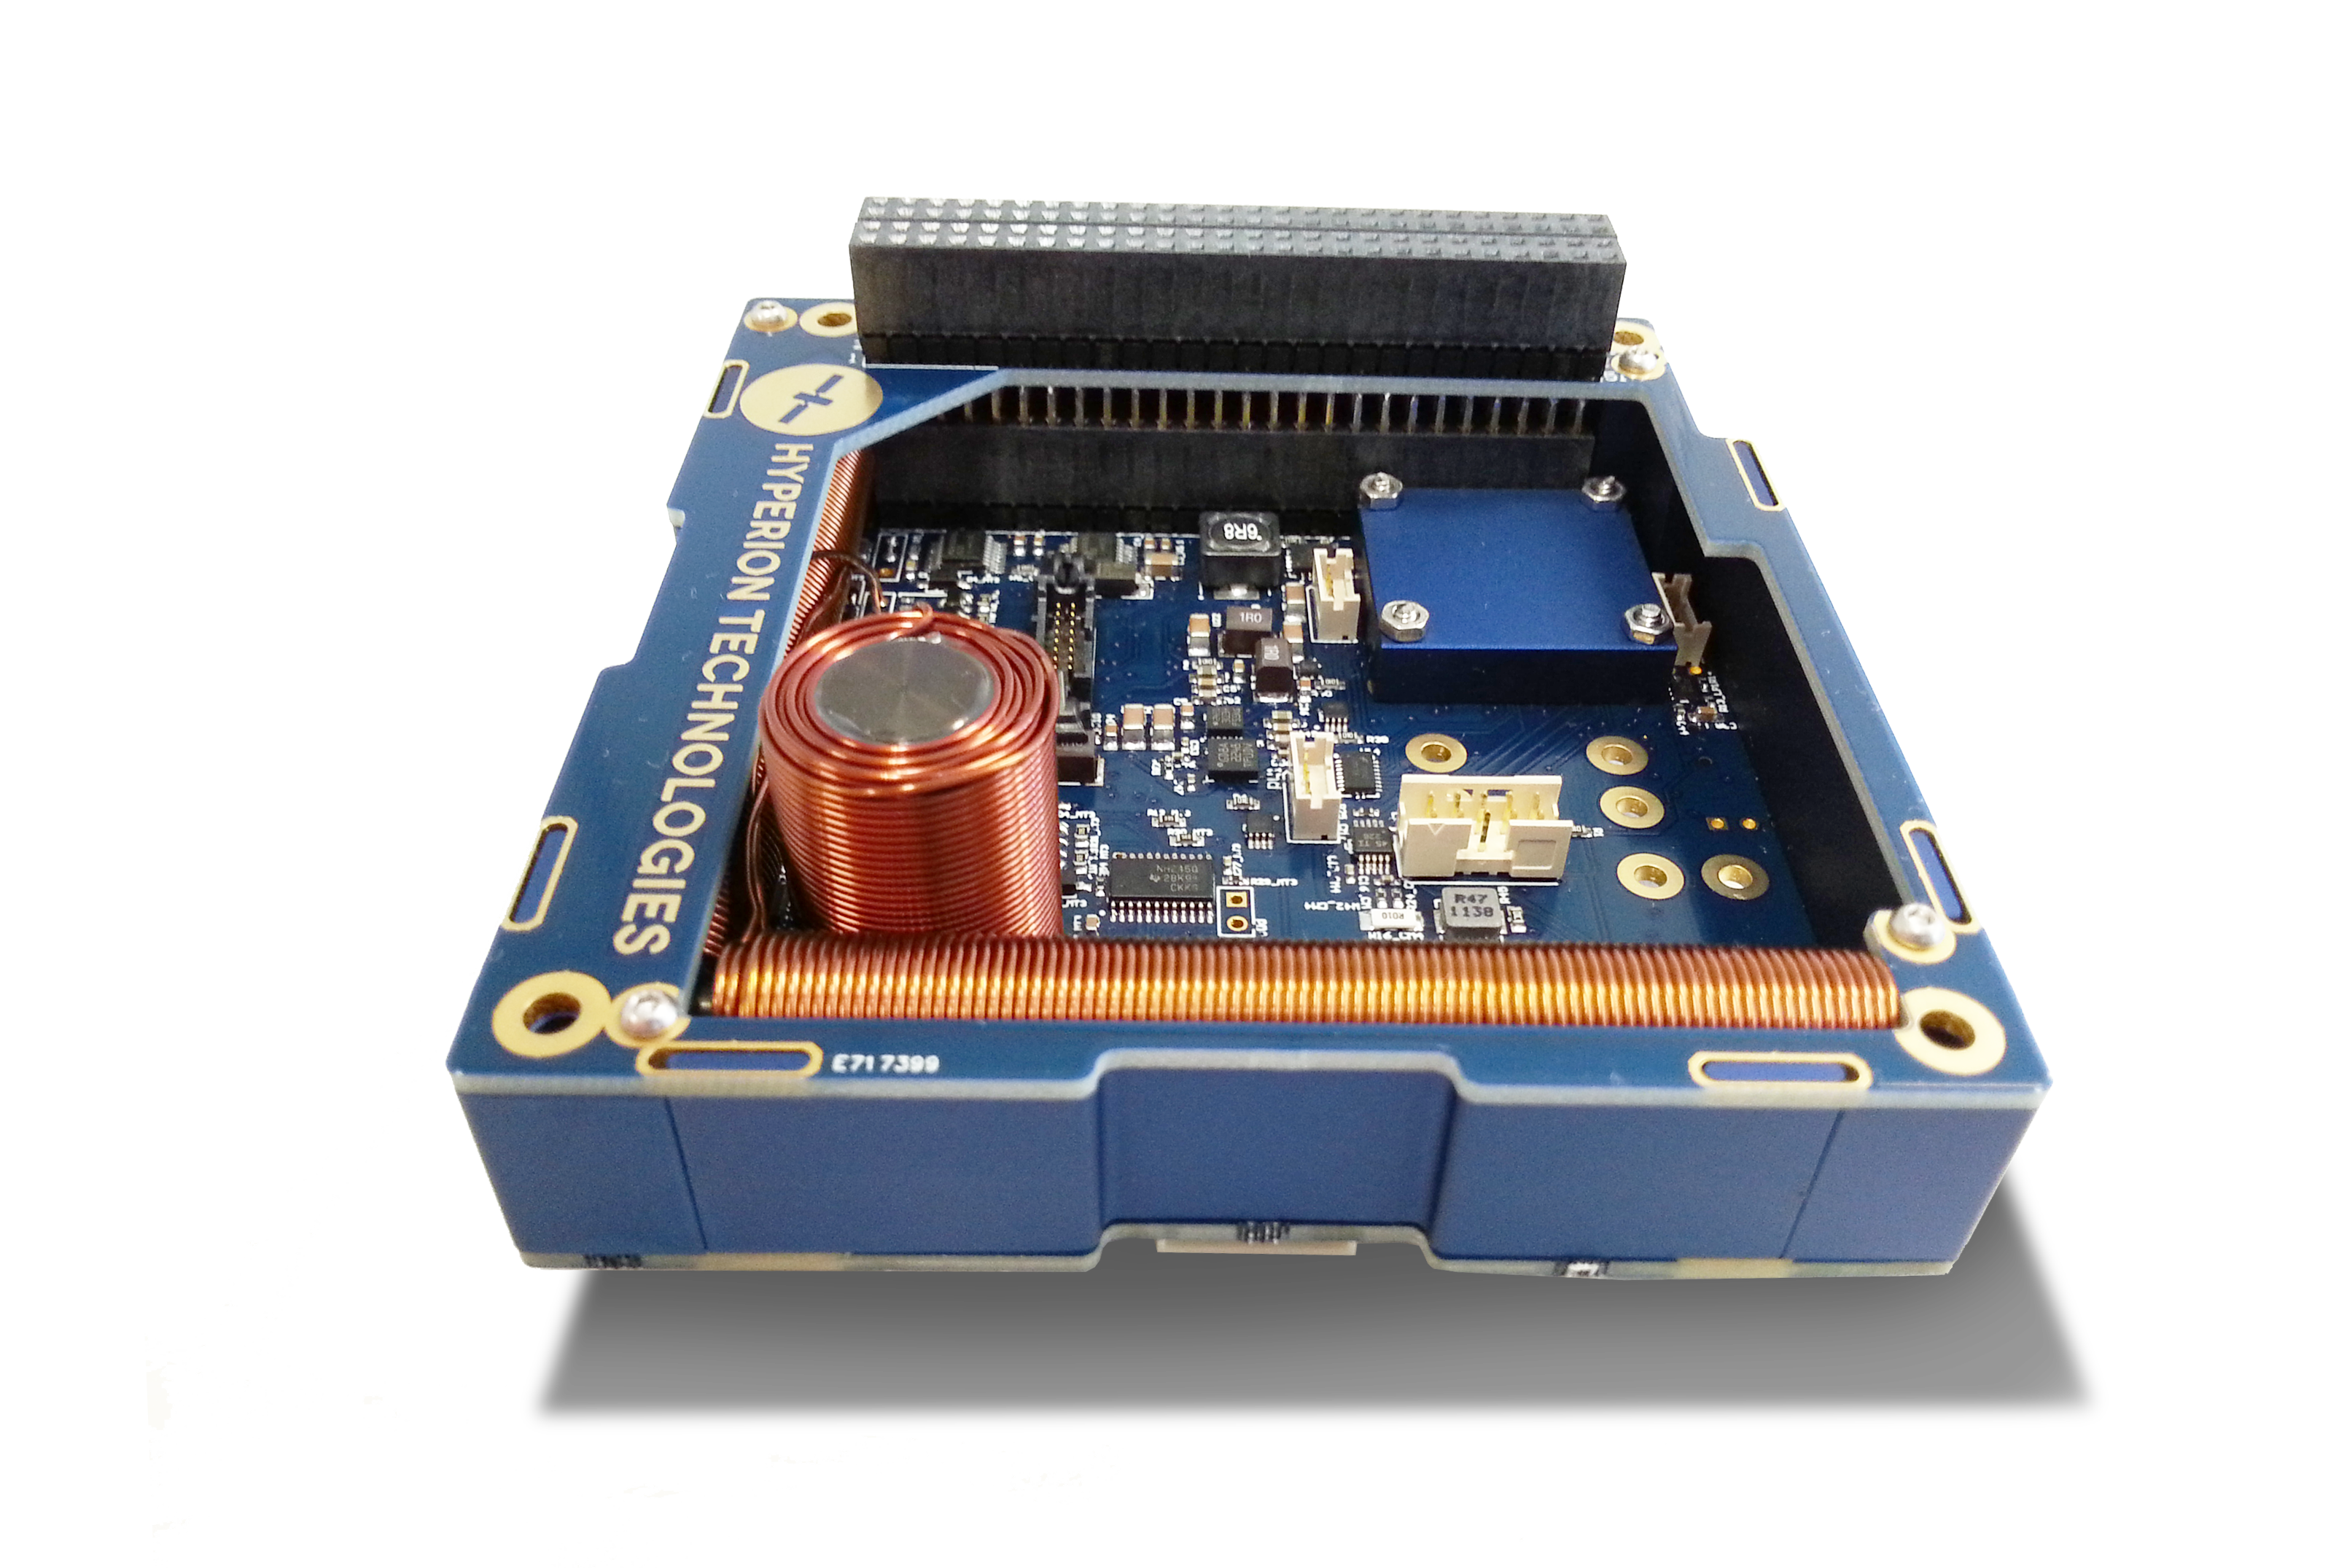 Celeste The GNSS receiver